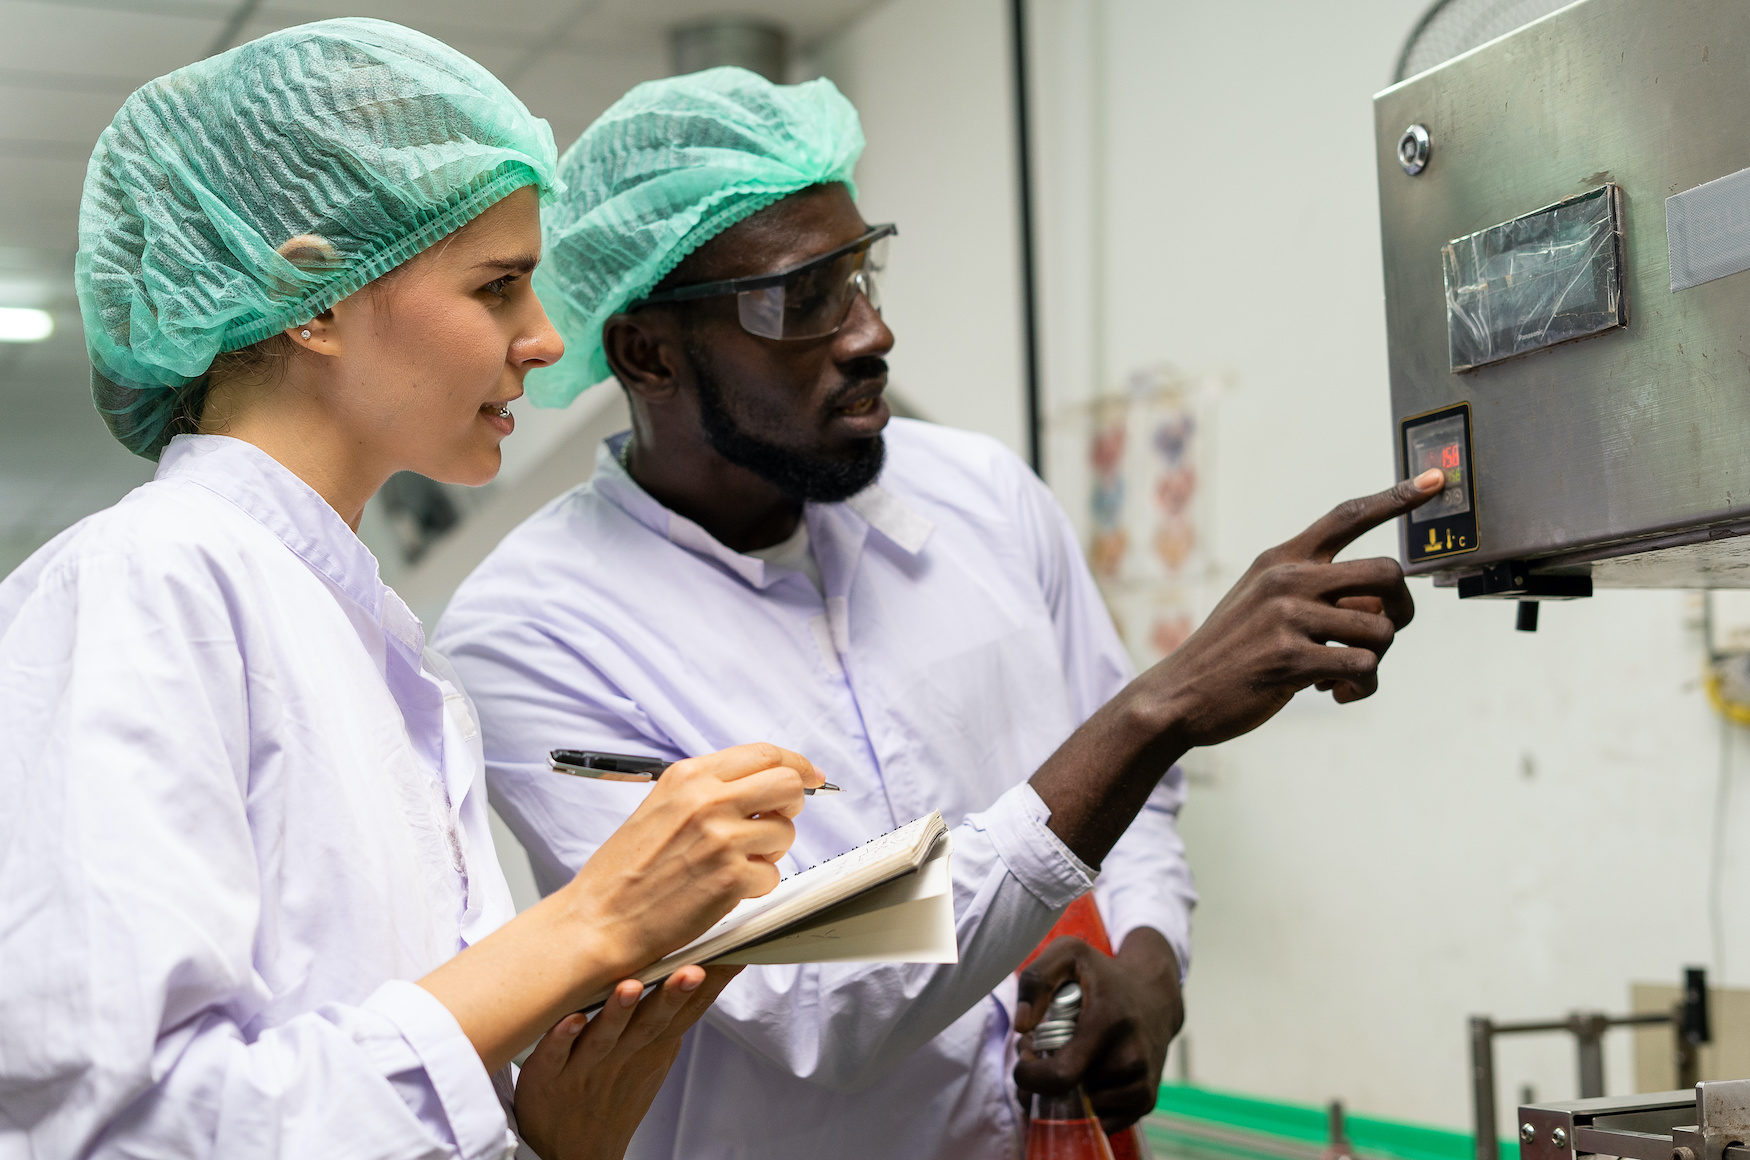 A quality supervisor or food technician explains the use of the Shrink Tunnel Machine to the new employee. Quality inspectors work together in the food factory to inspect food quality in standards.